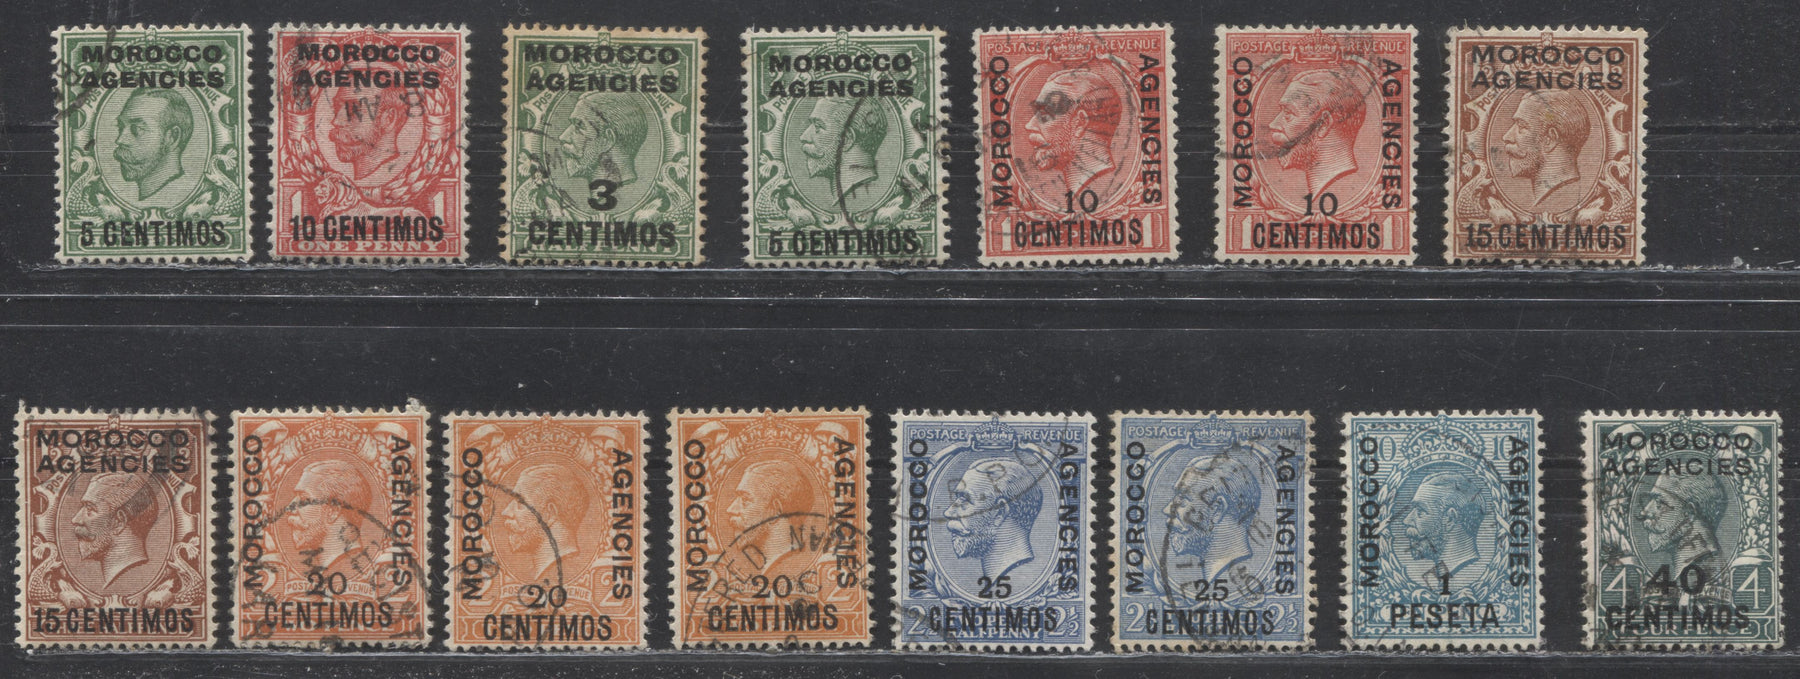 Morocco Agencies Spanish Currency #49/59 (SG#126-135) 1911-1924 King George V Heads, Watermarked Royal Cypher, Overprinted and Surcharged, A Complete F-VF Used Set